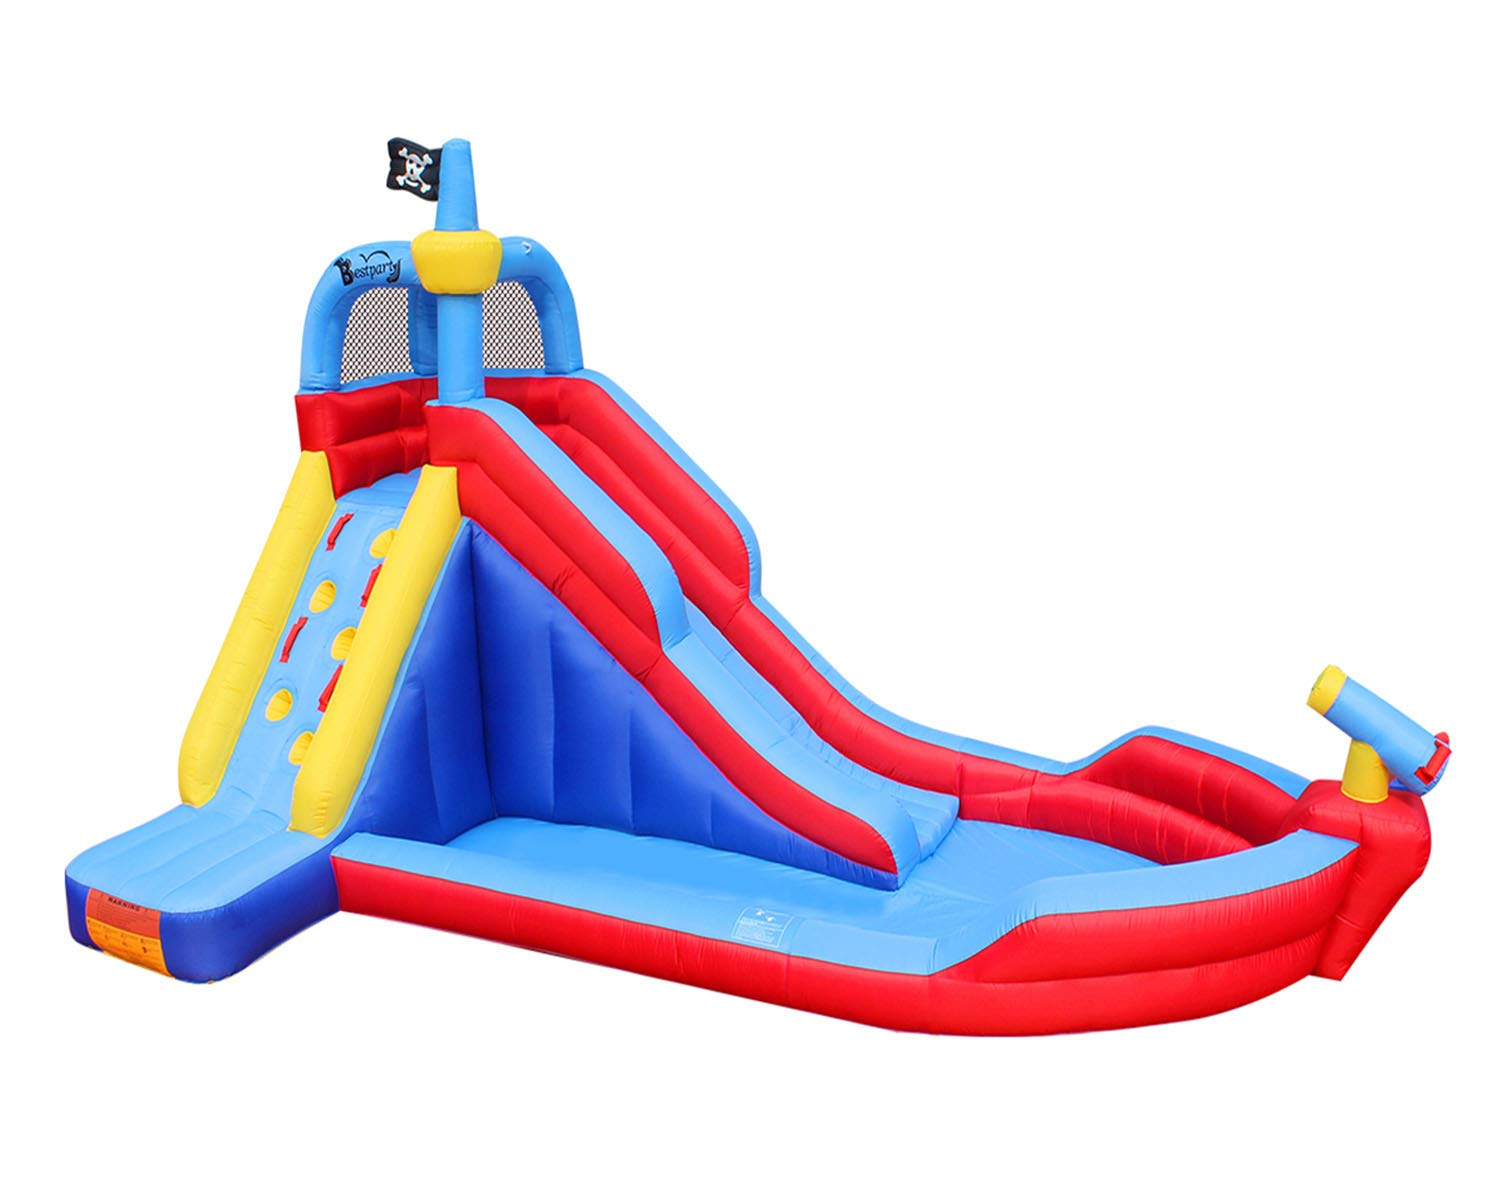 RETRO JUMP Inflatable Pirate Boat Bouncy Water Slide with Blower Climbing Wall Water Park for Kids by RETRO JUMP (Image #1)